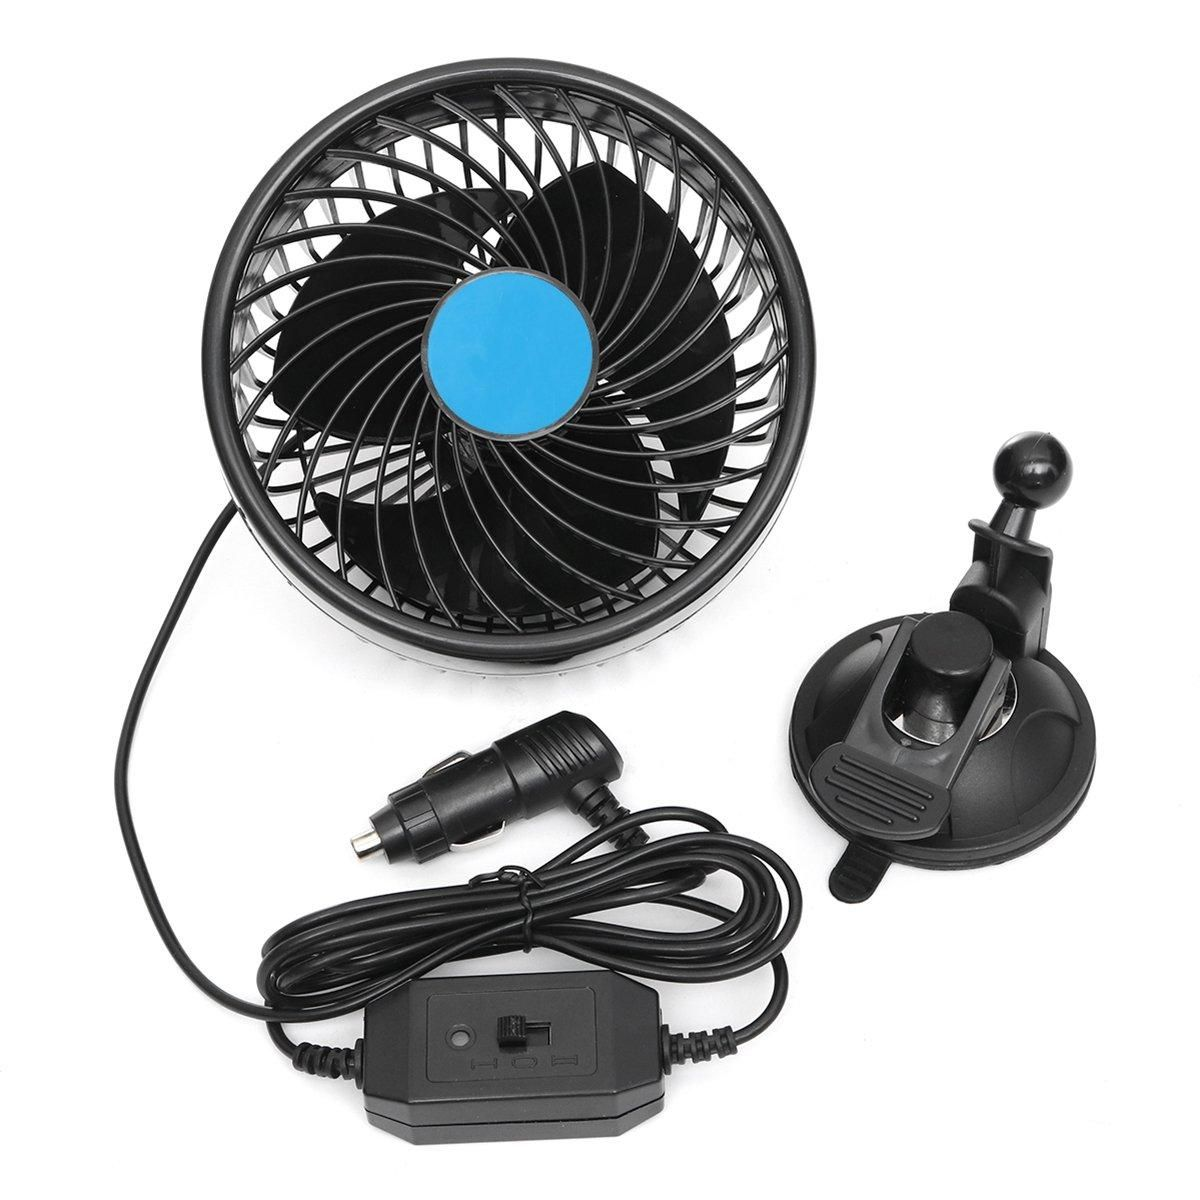 Dc 12v 24v 6 Inch Air Cooling Fan Mini Rotatable Fan With Sucker